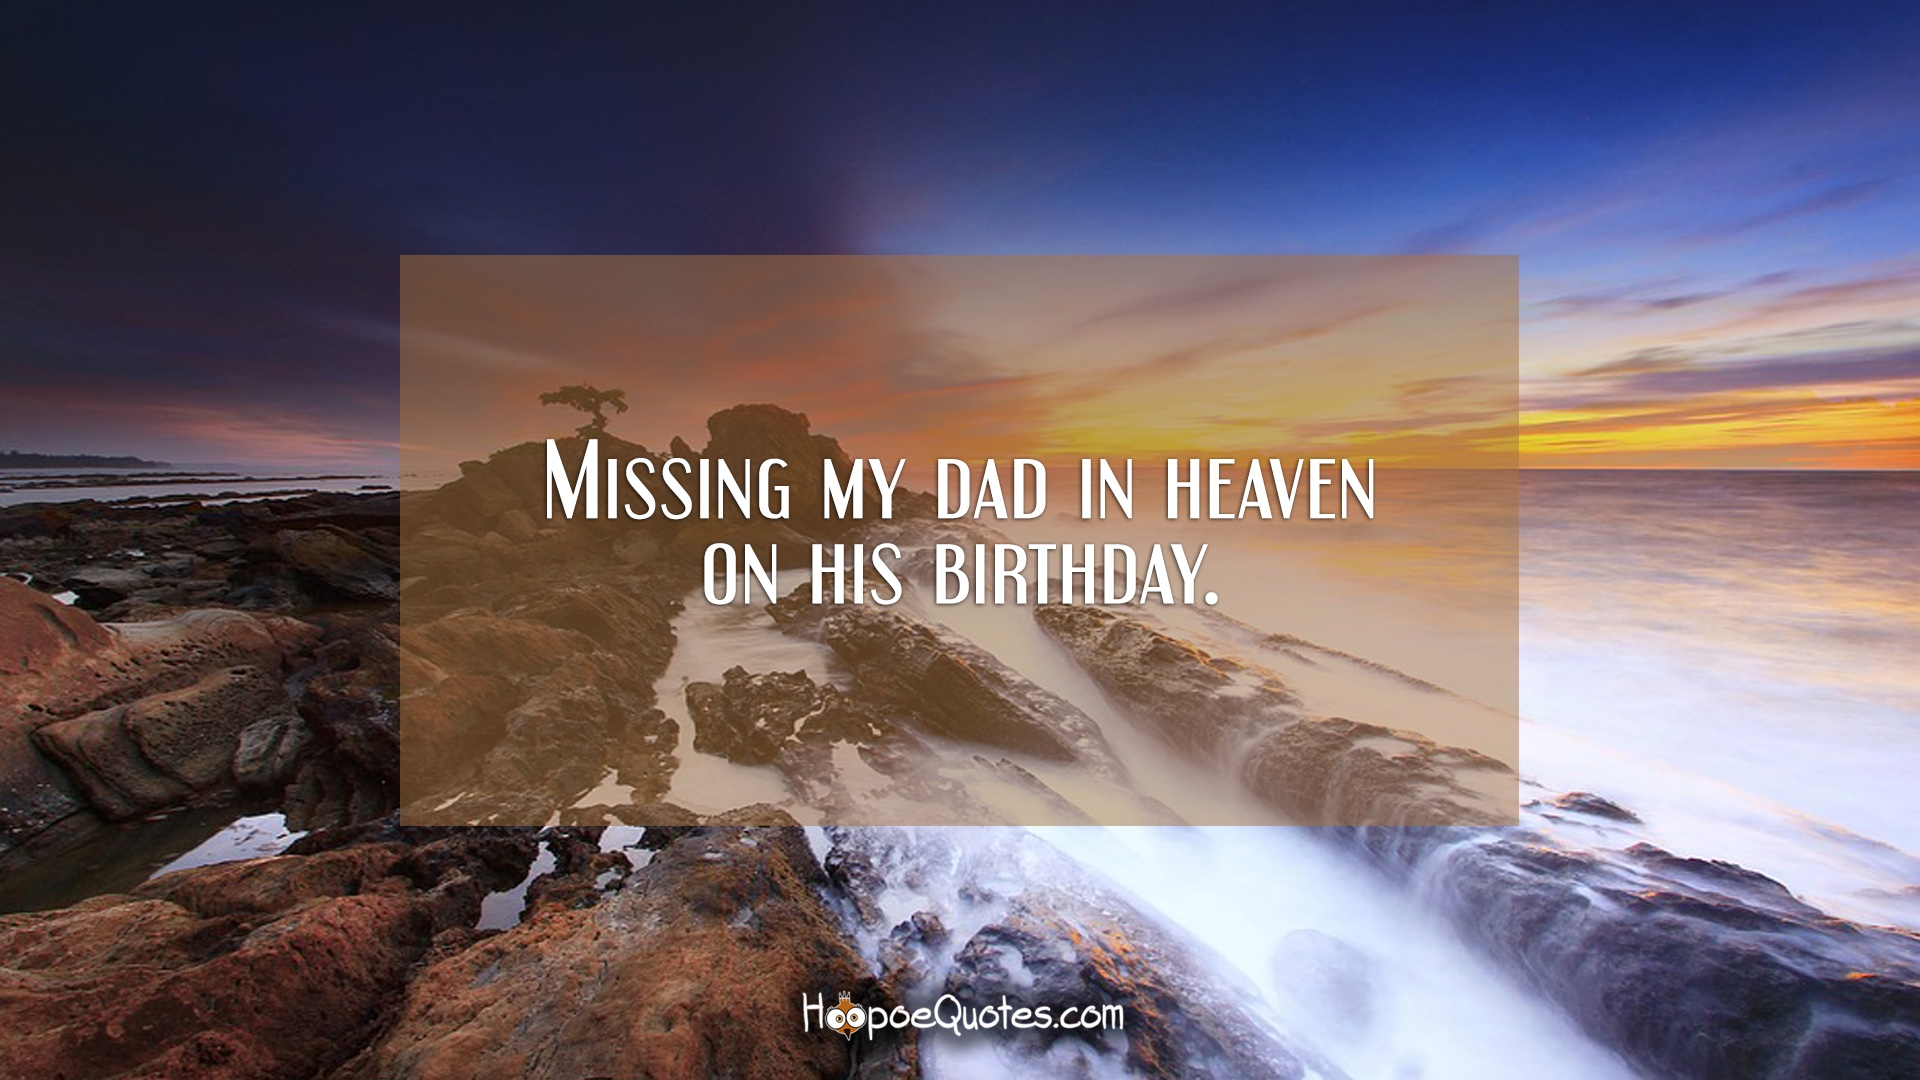 Missing My Dad In Heaven On His Birthday Hoopoequotes